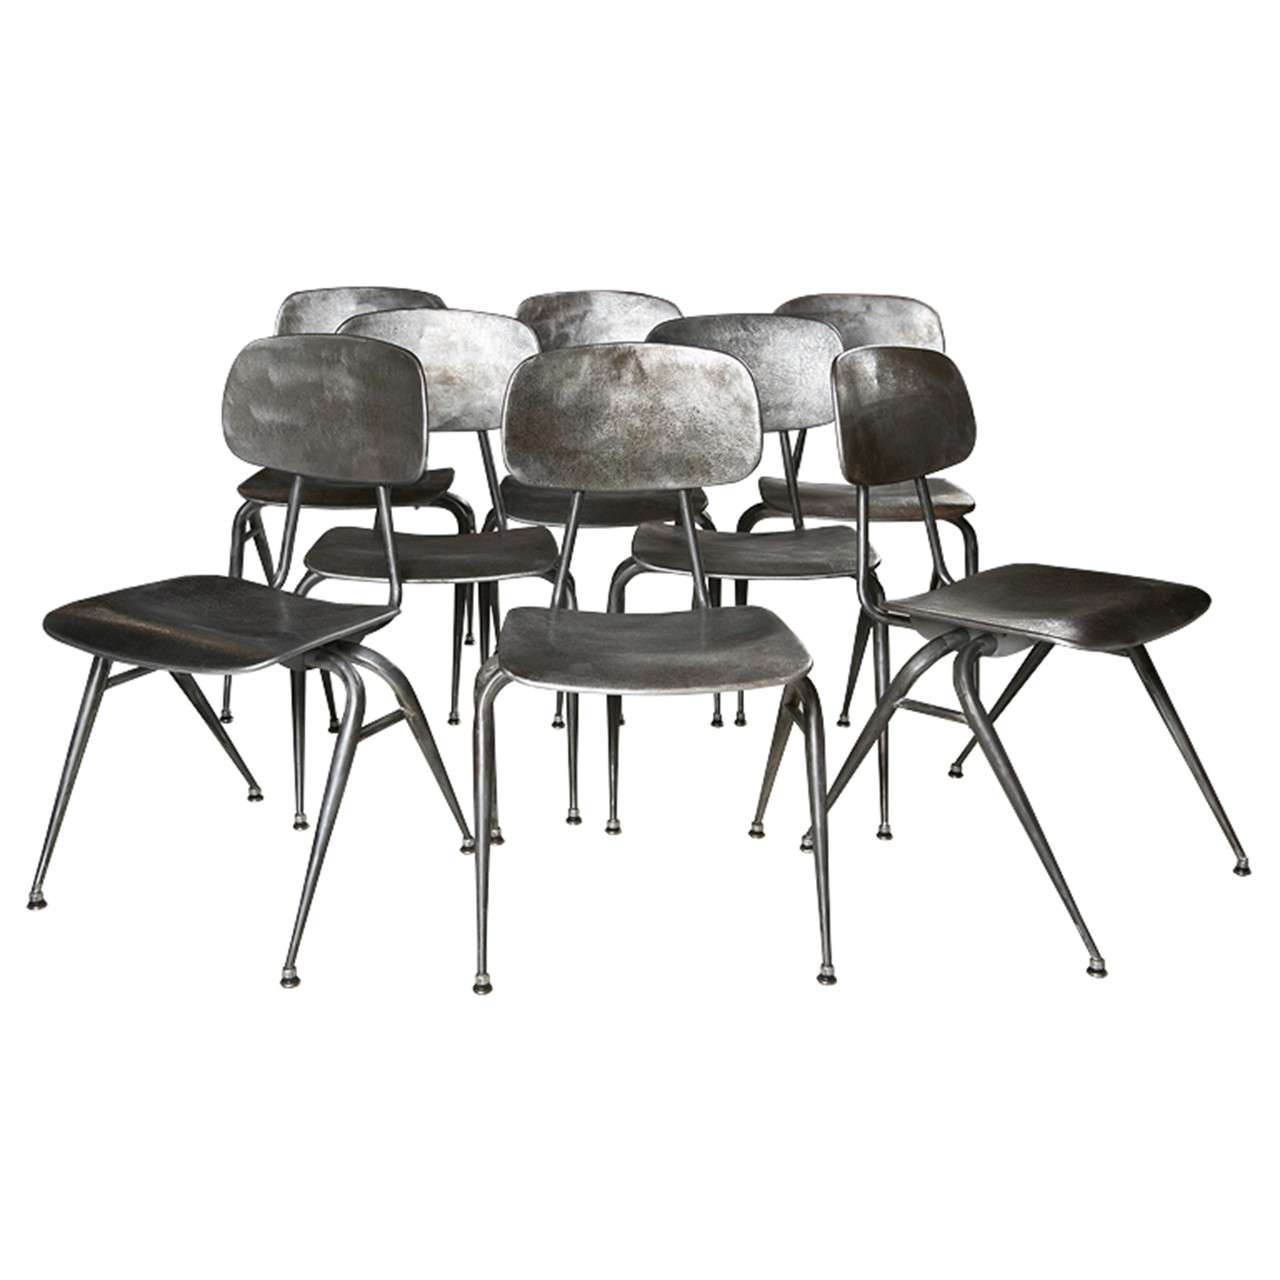 modern metal chairs sonoma anti gravity chair review mid century at 1stdibs